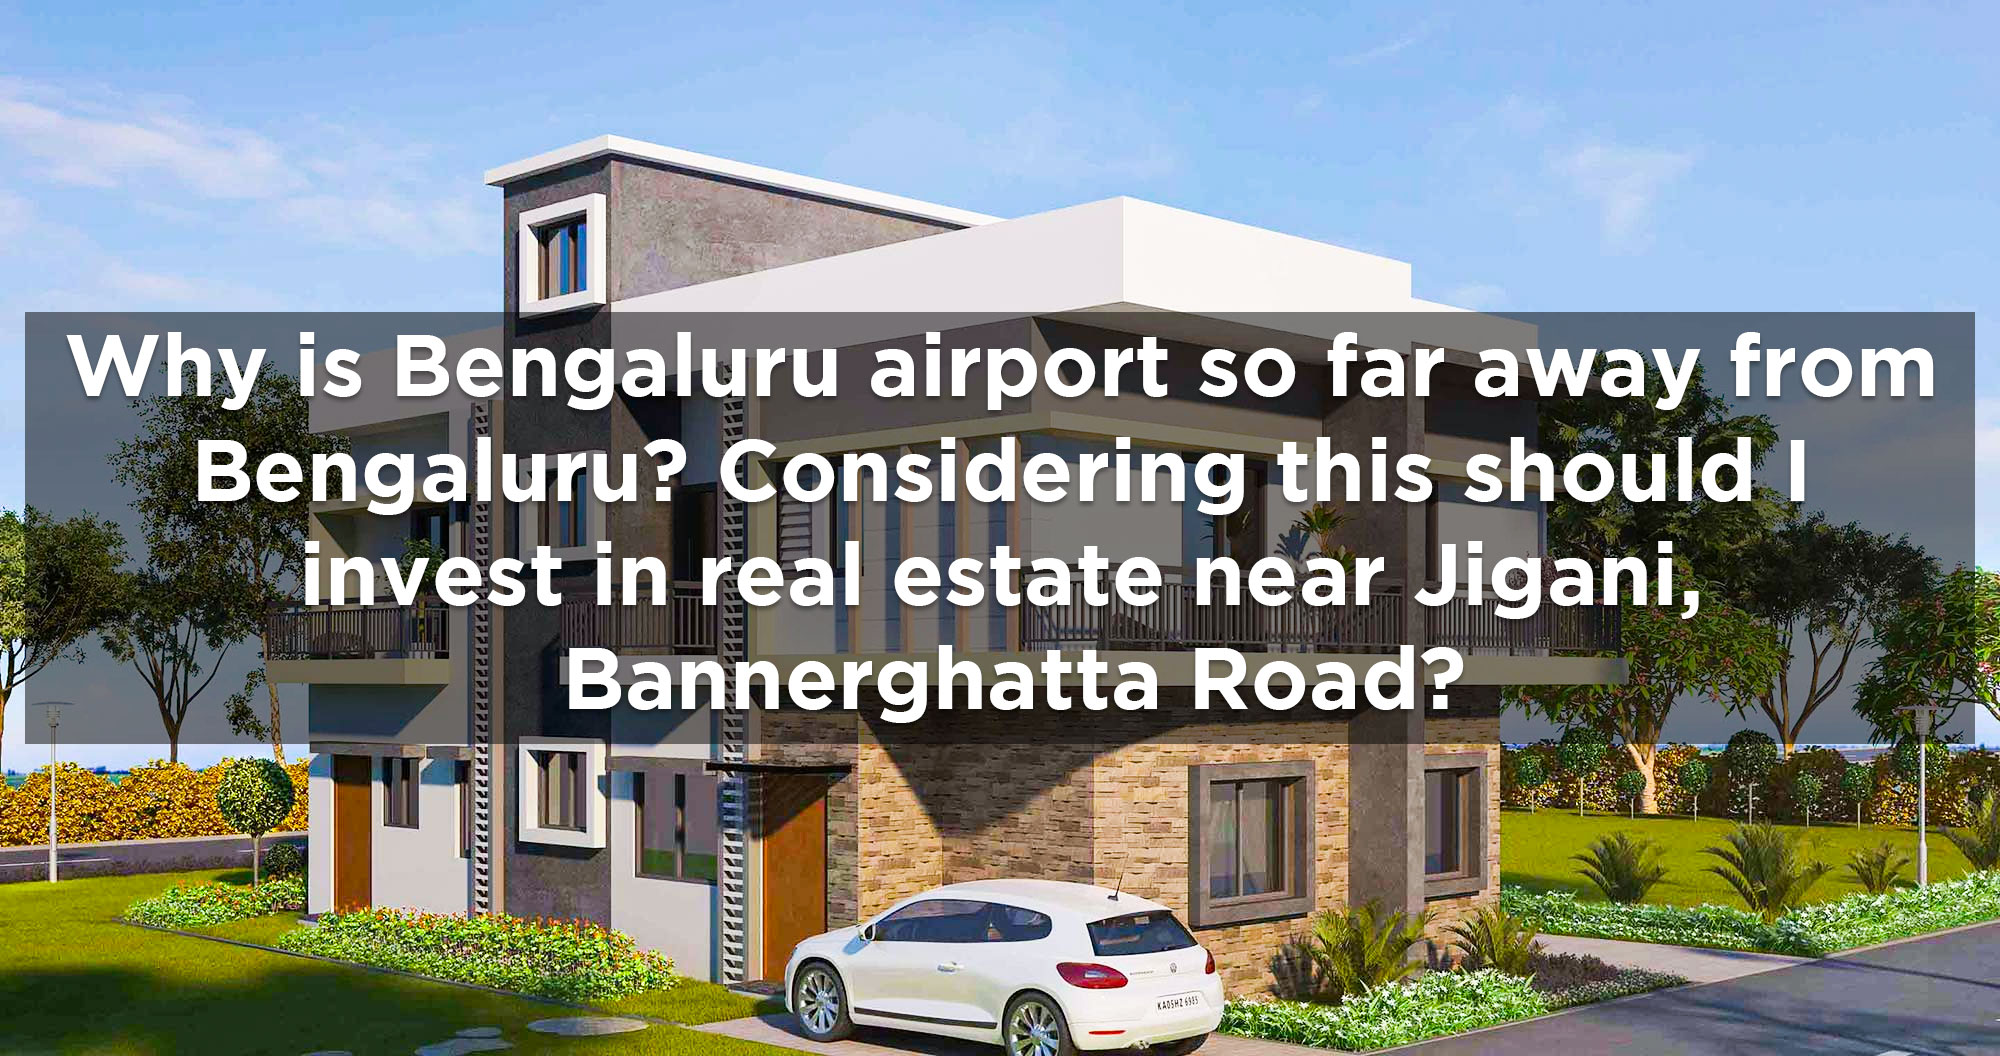 Why is Bengaluru airport so far away from Bengaluru? Considering this should I invest in real estate near Jigani, Bannerghatta Road?